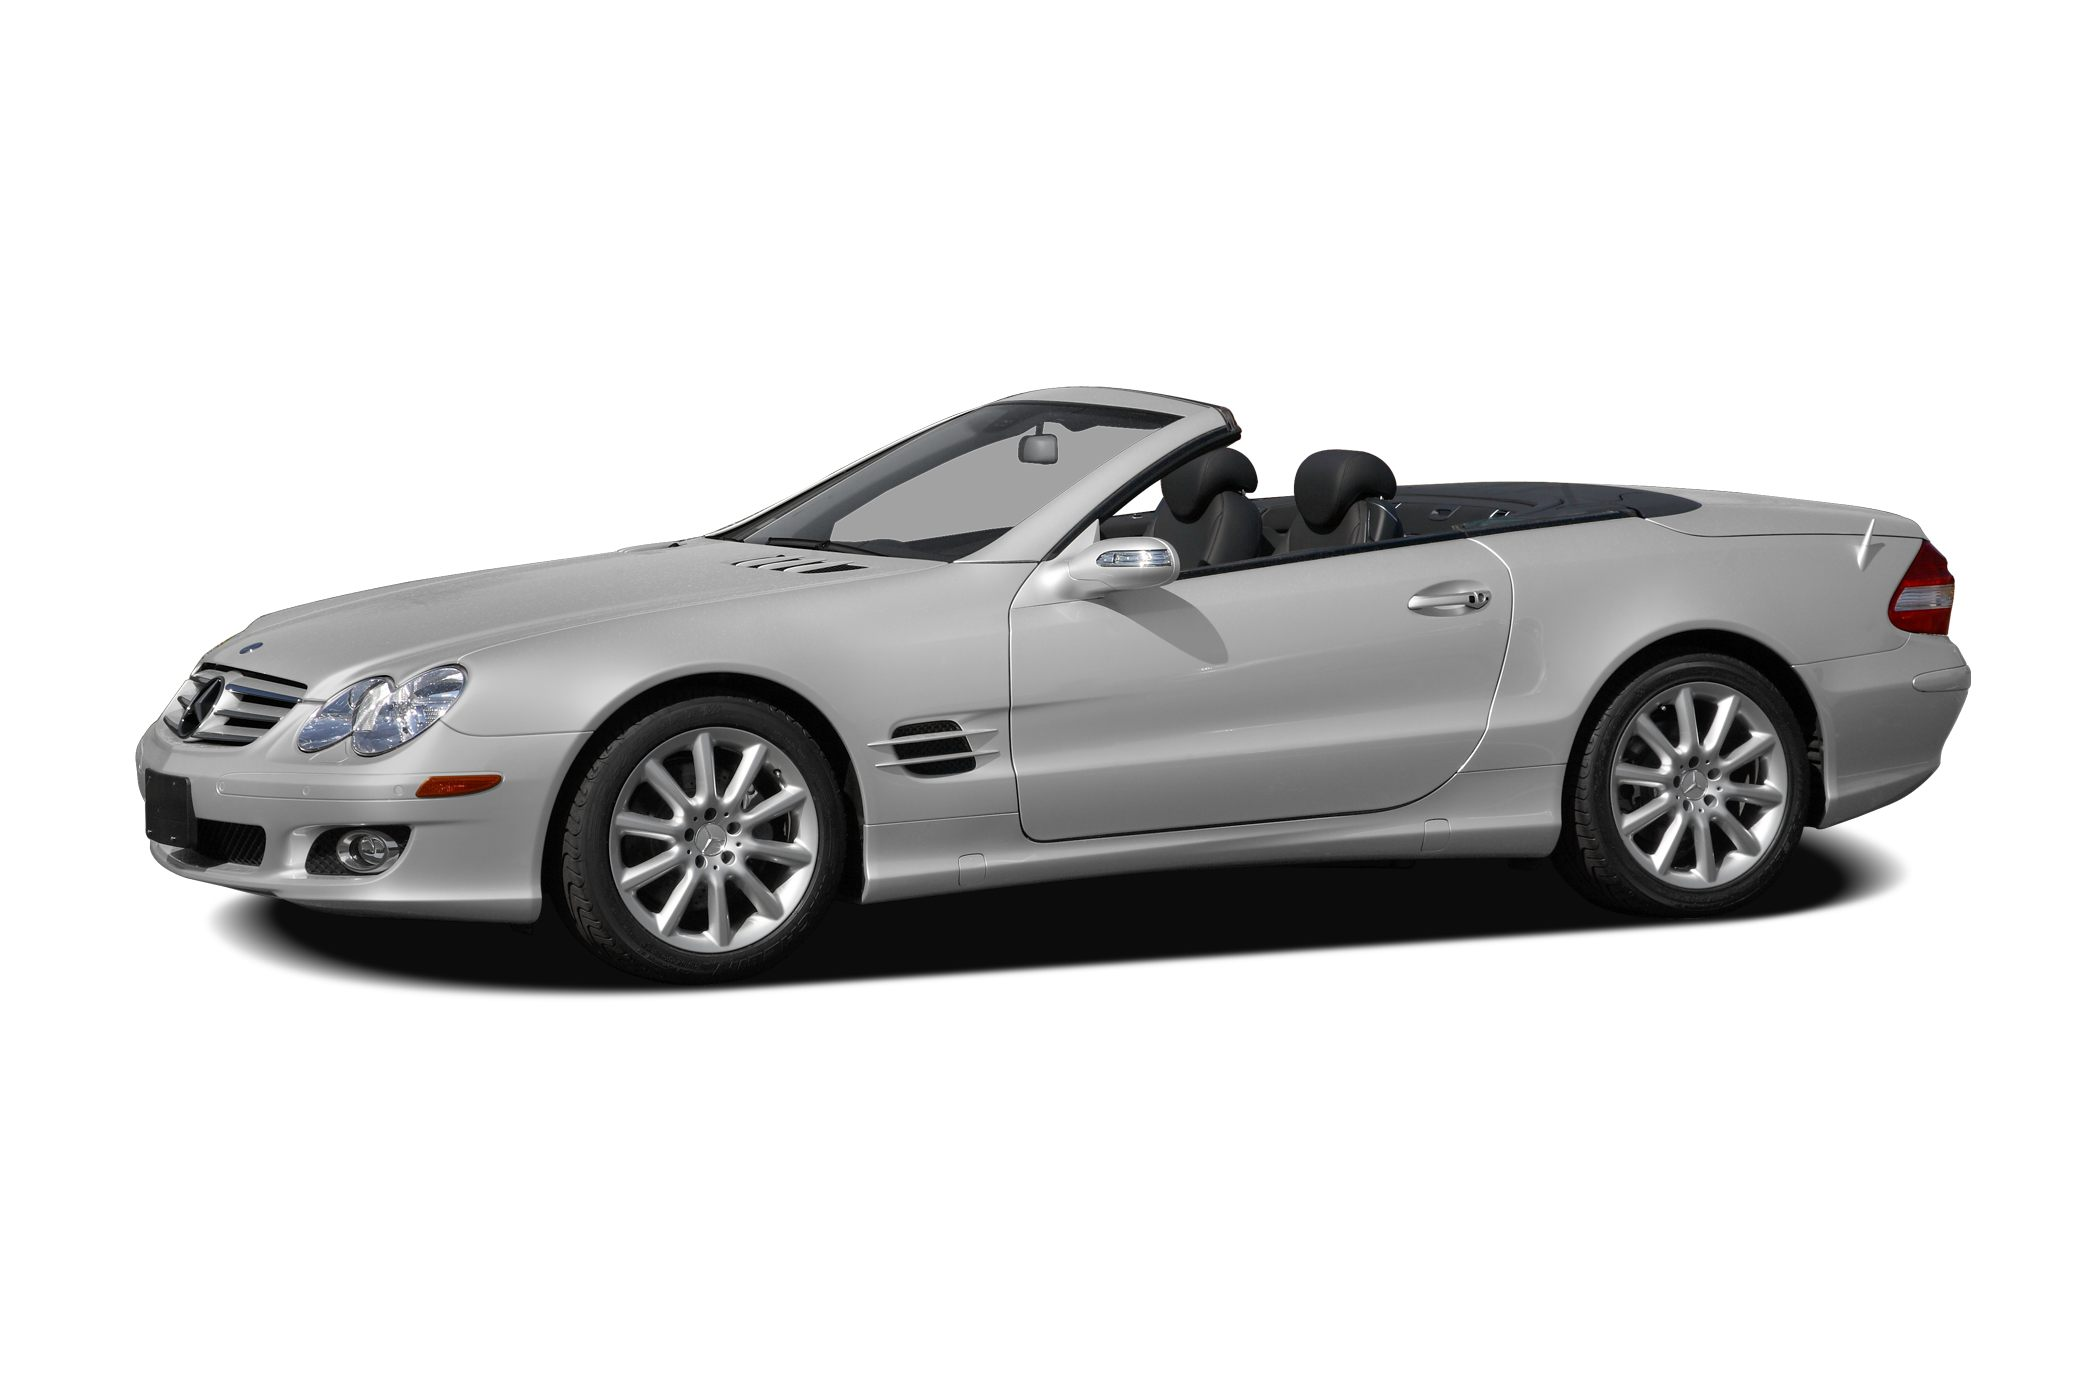 2008 Mercedes-Benz SL-Class SL550 Roadster Convertible for sale in Manassas for $32,977 with 54,631 miles